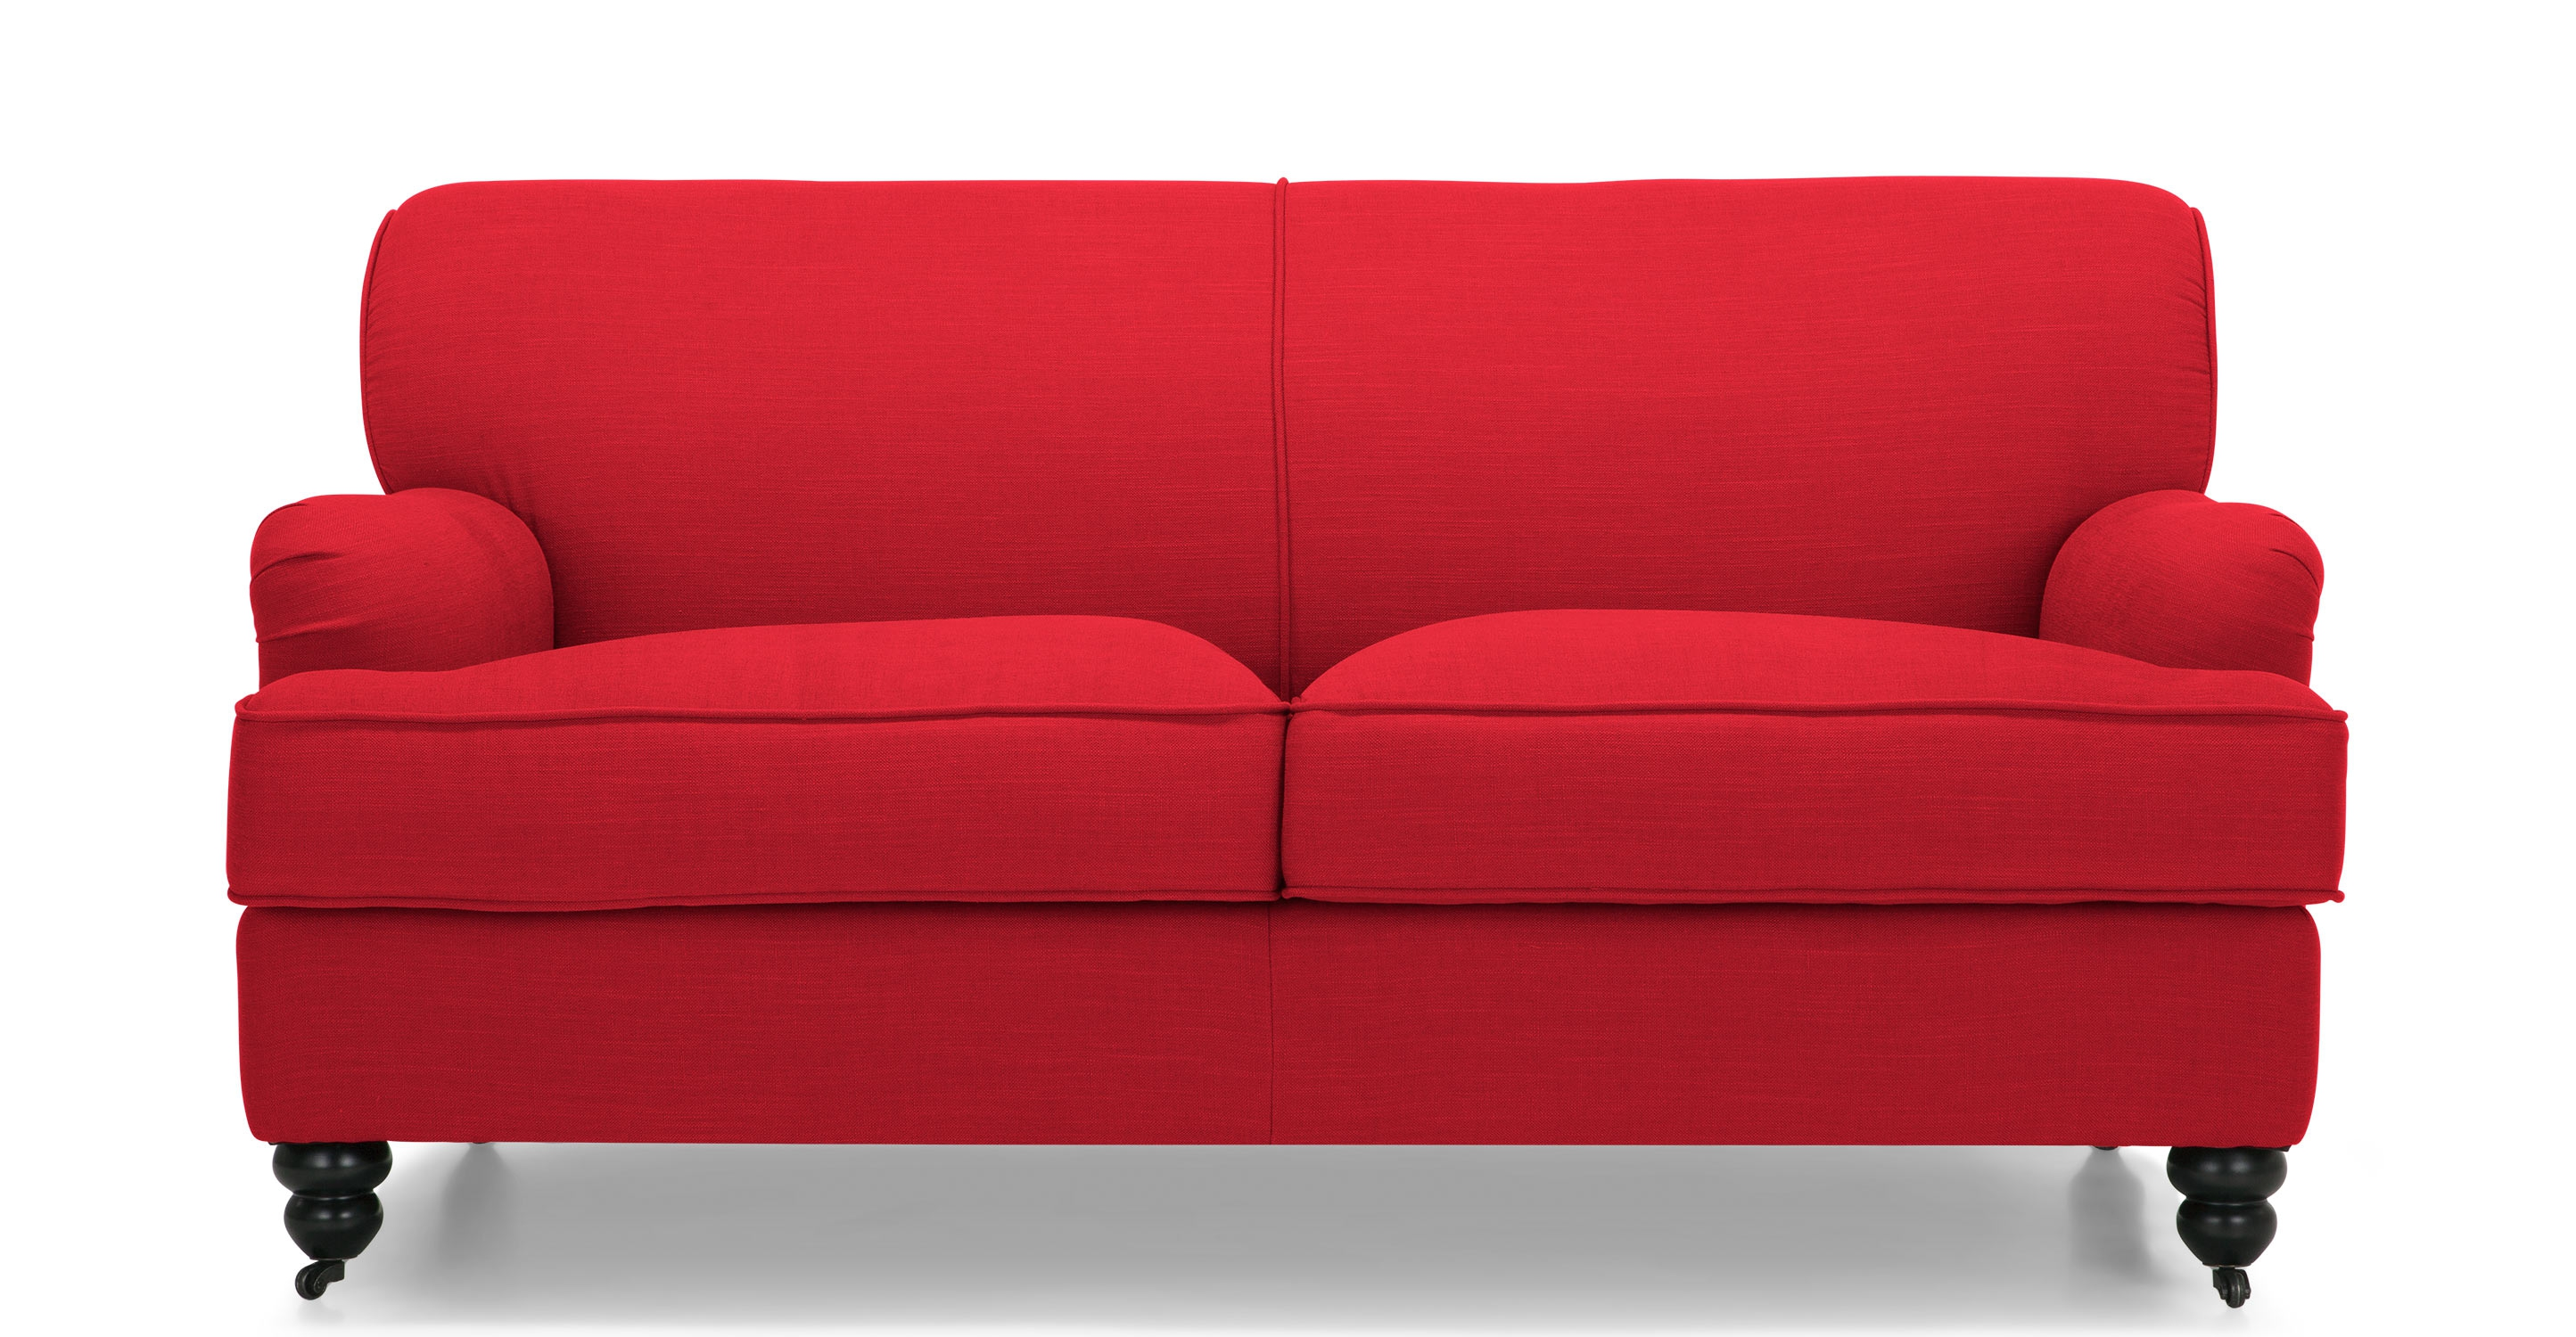 red sofas perfect red sofa 95 for sofas and couches ideas with red sofa PBTNXAU